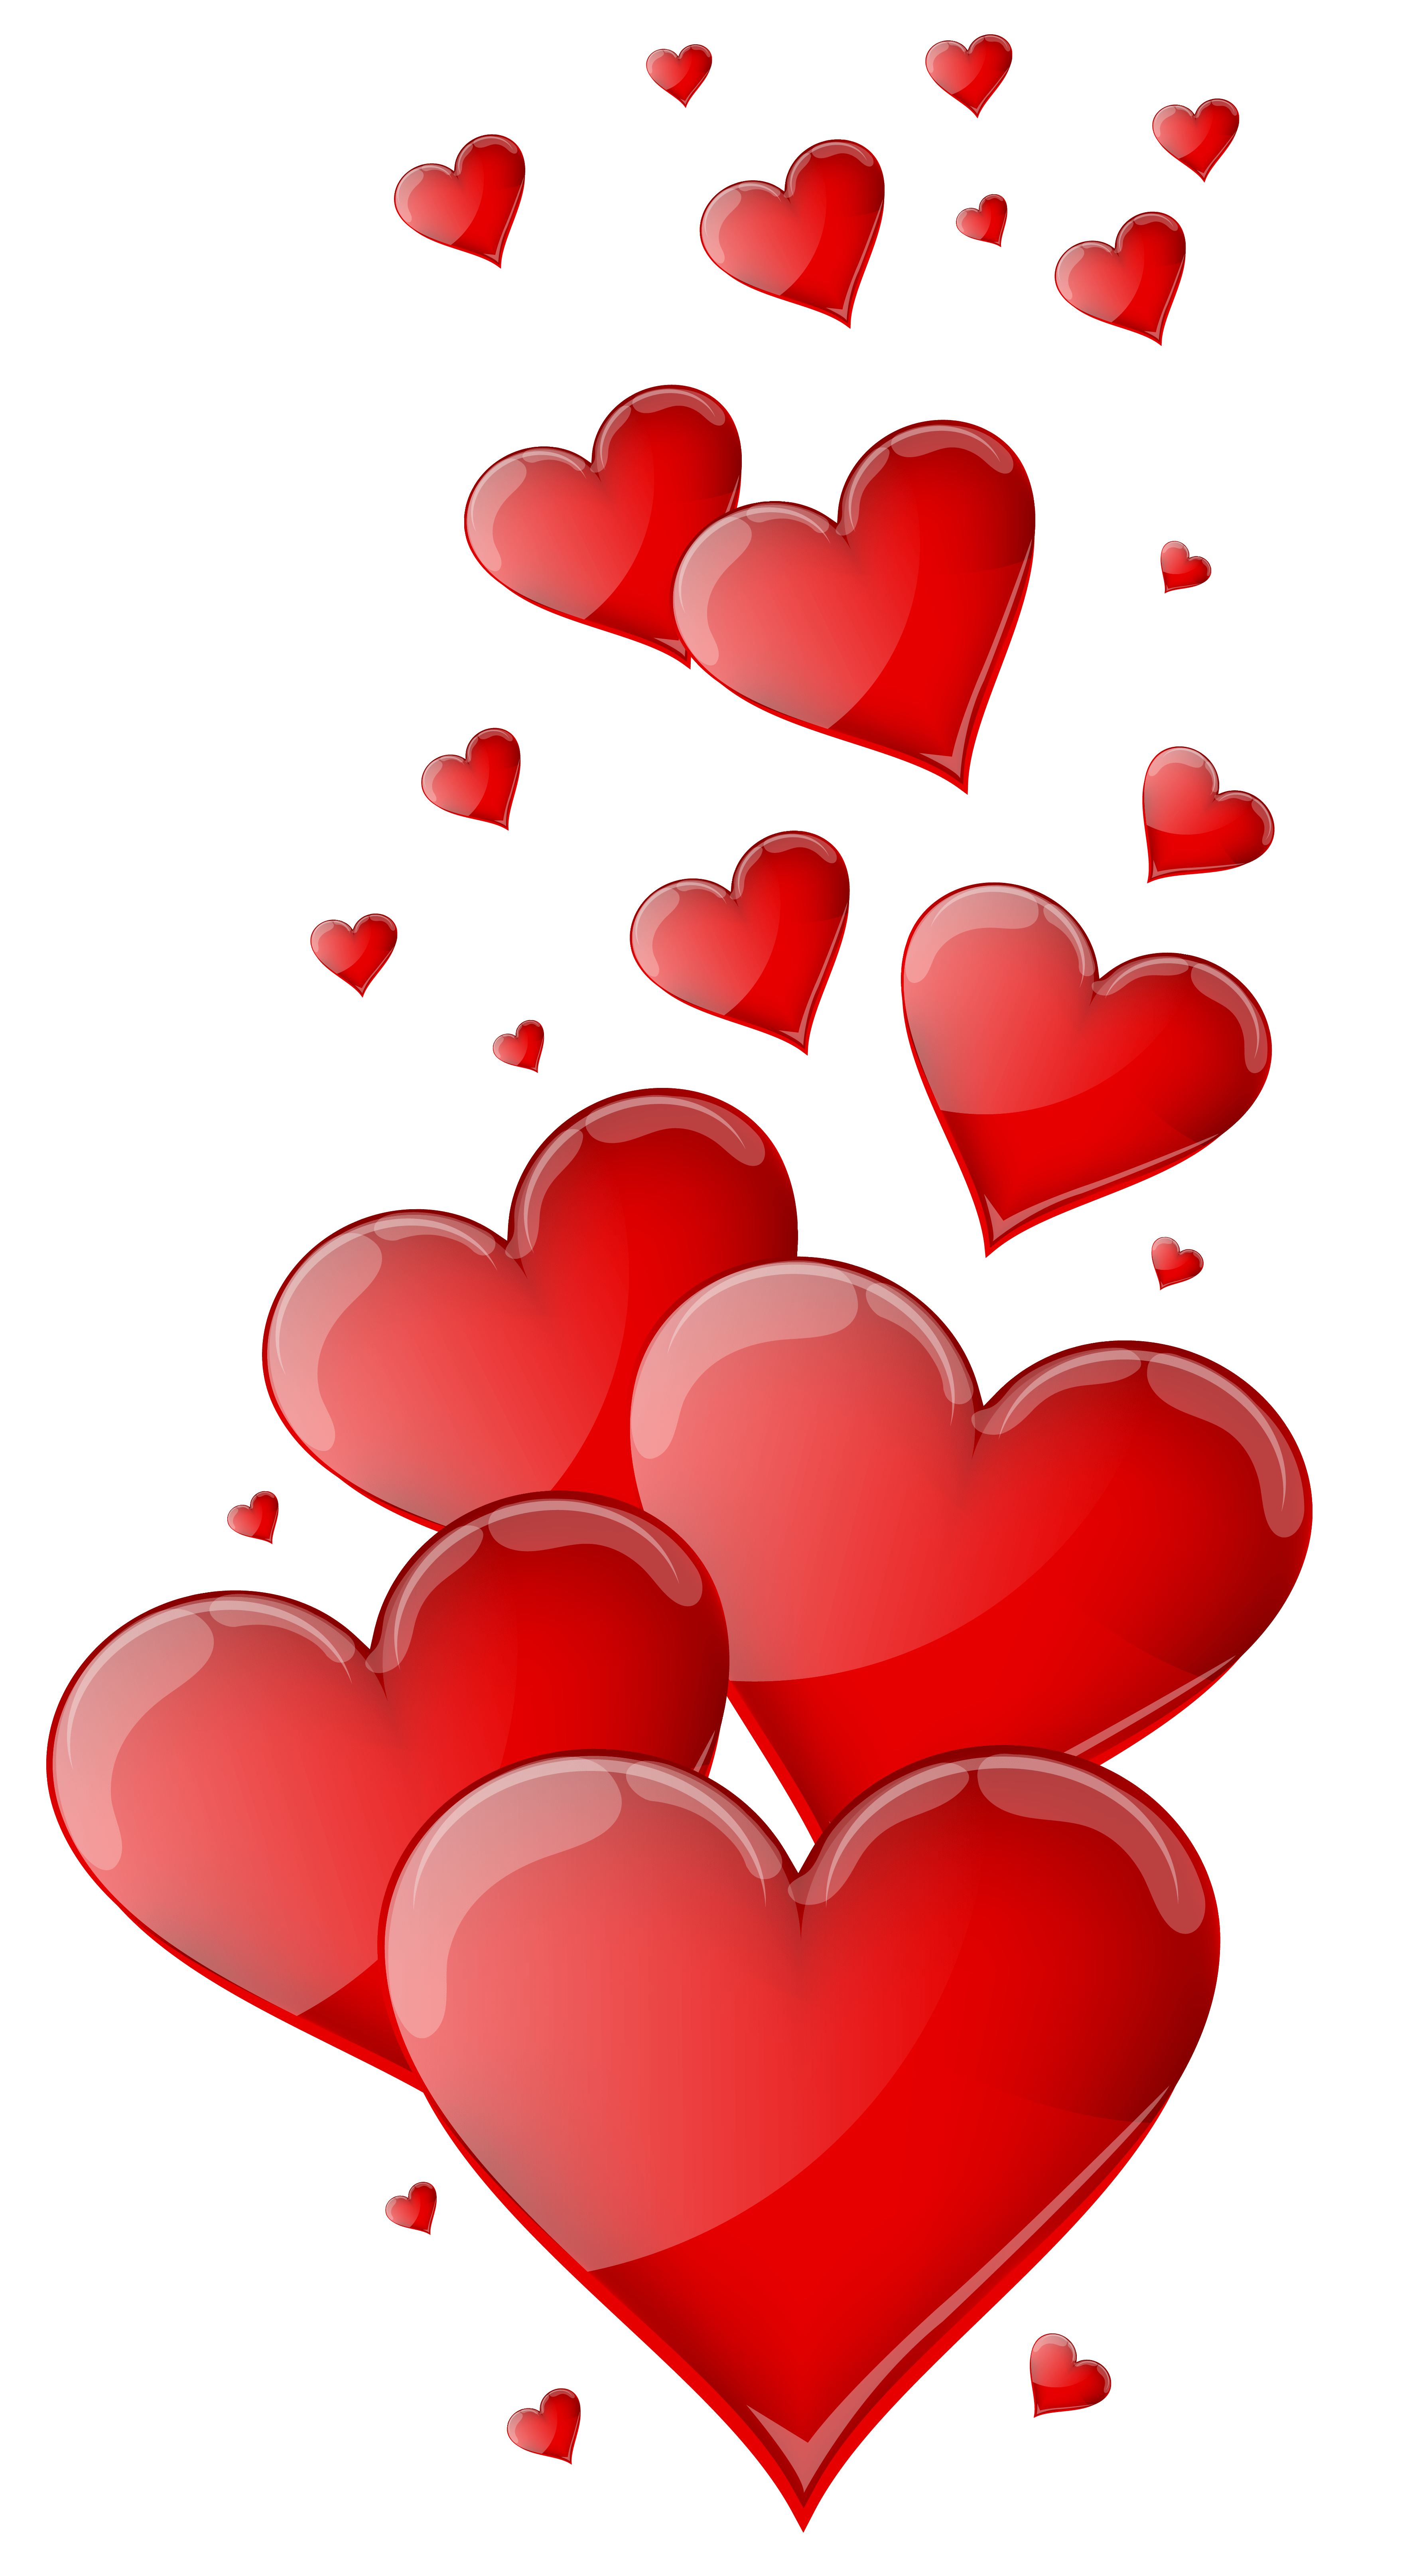 Heart PNG Transparent For Free Download - PngFind